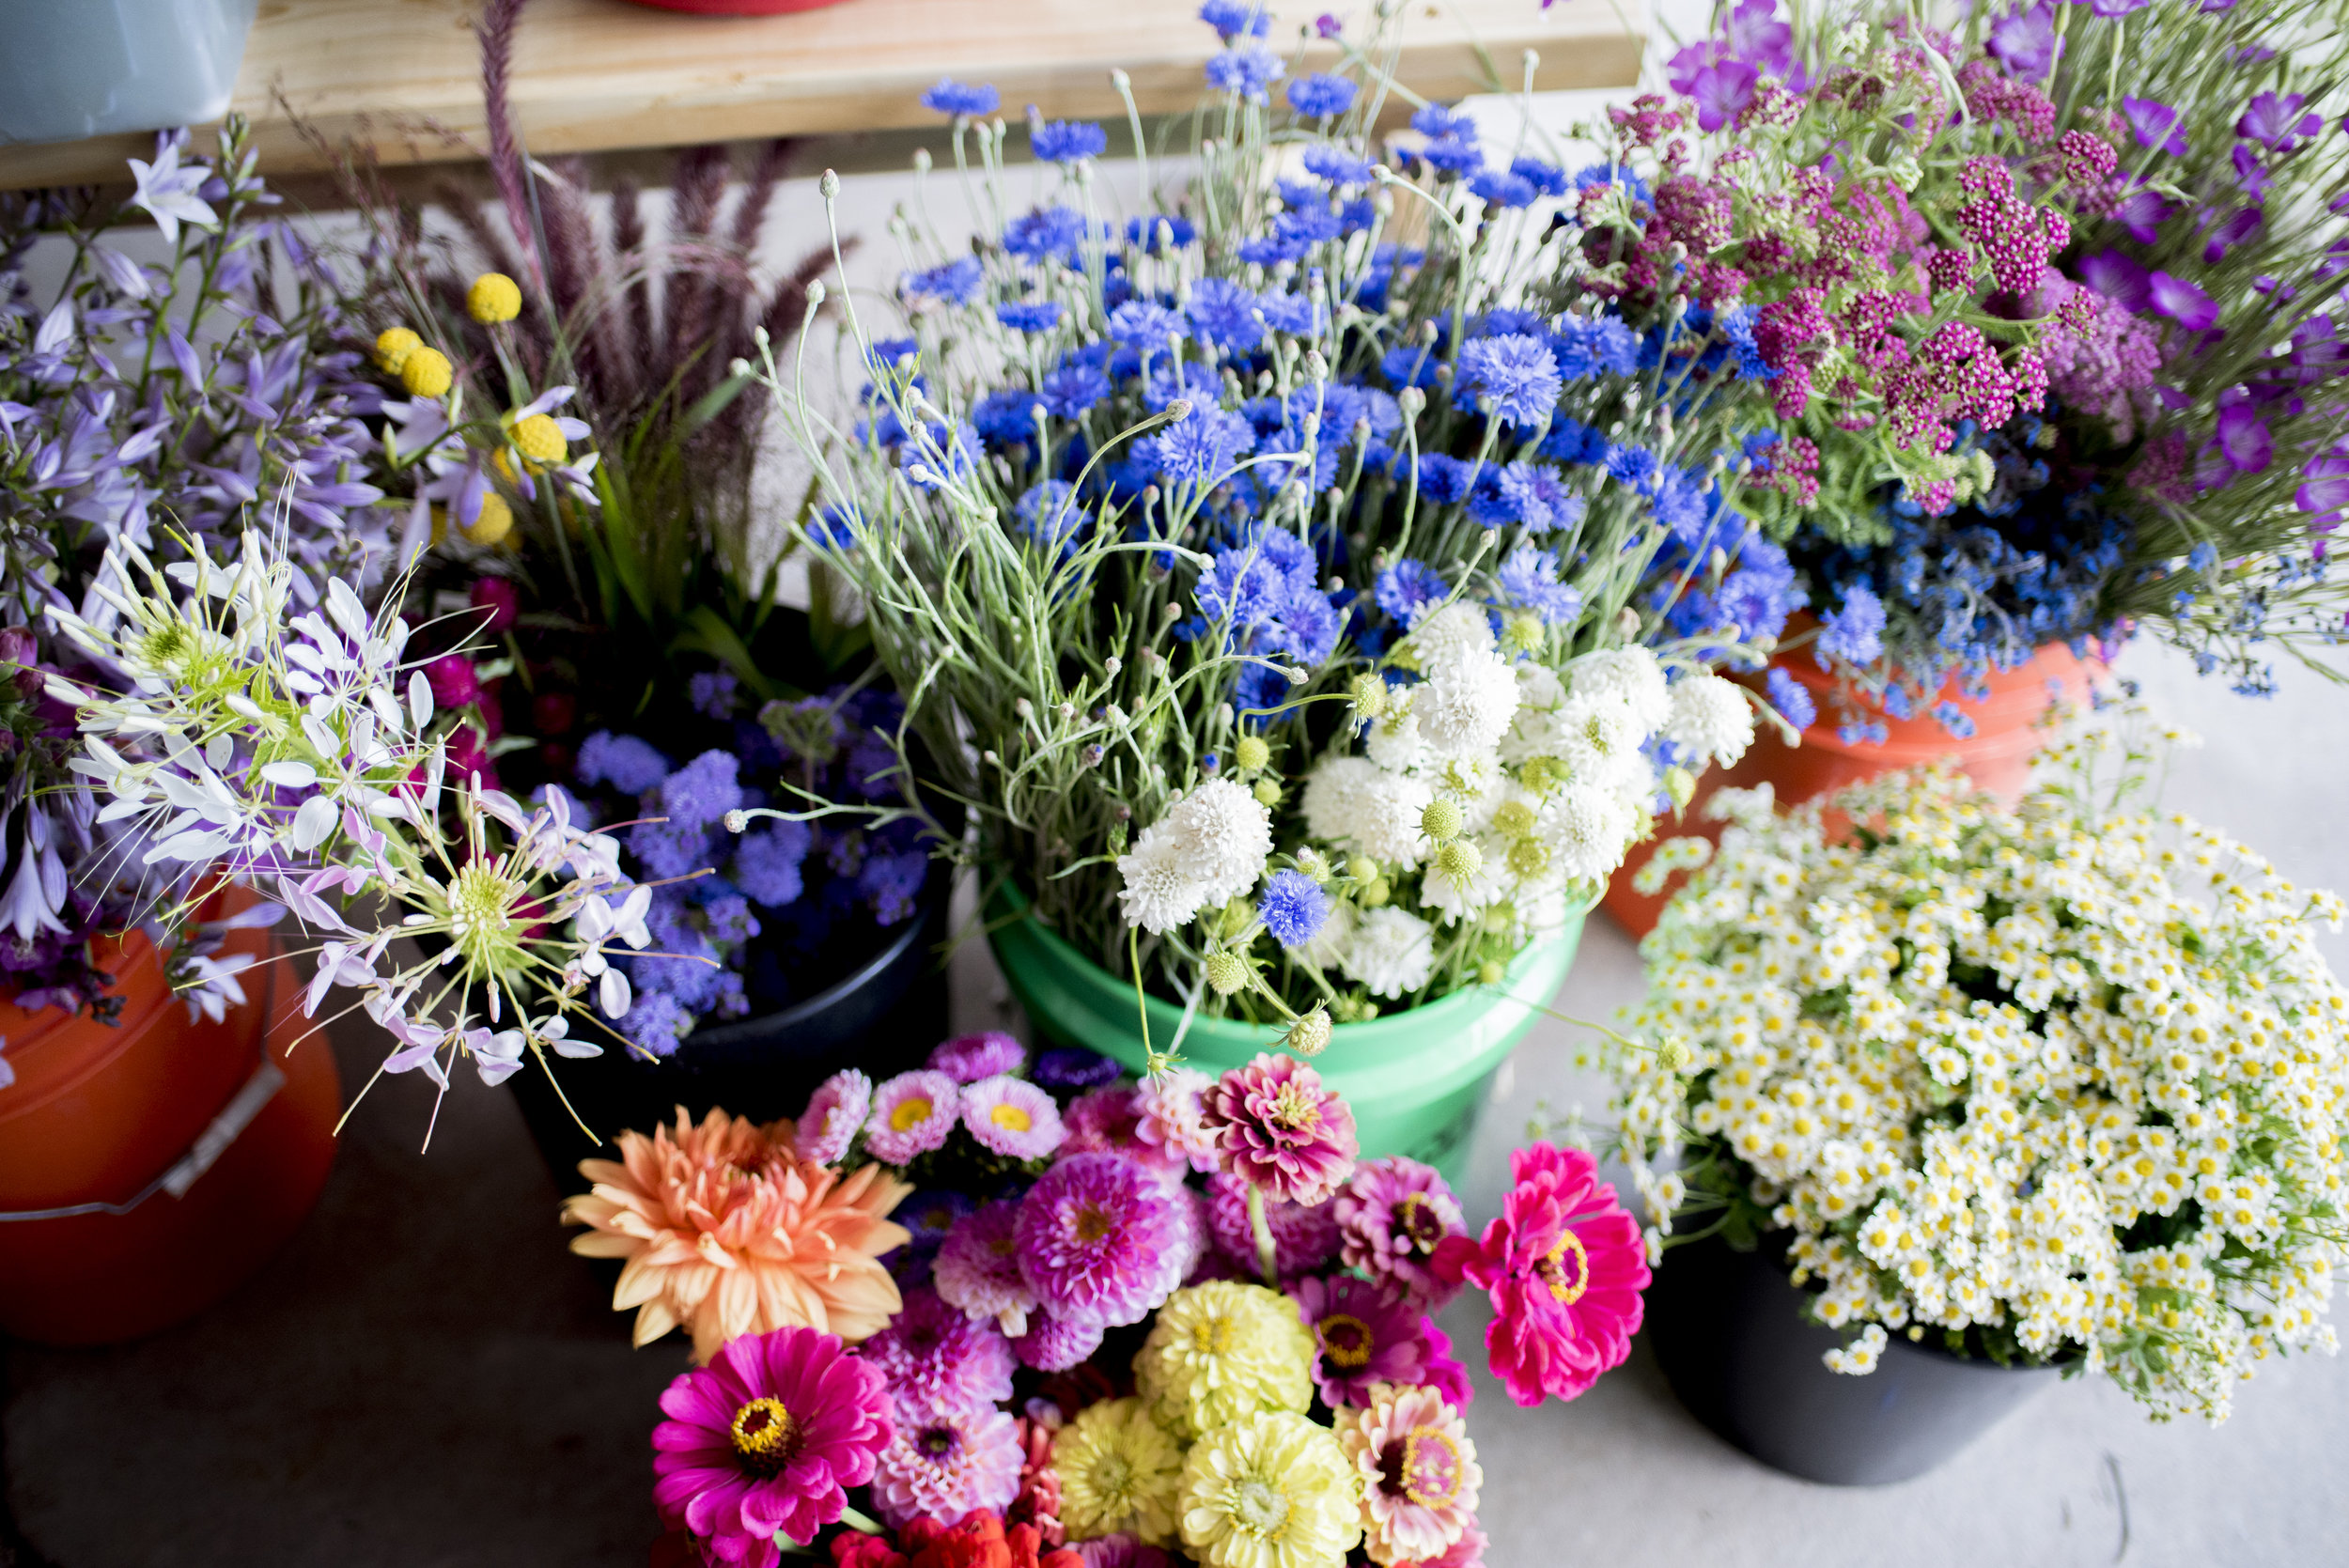 Beezies blooms workshop bouquet building 1.jpg